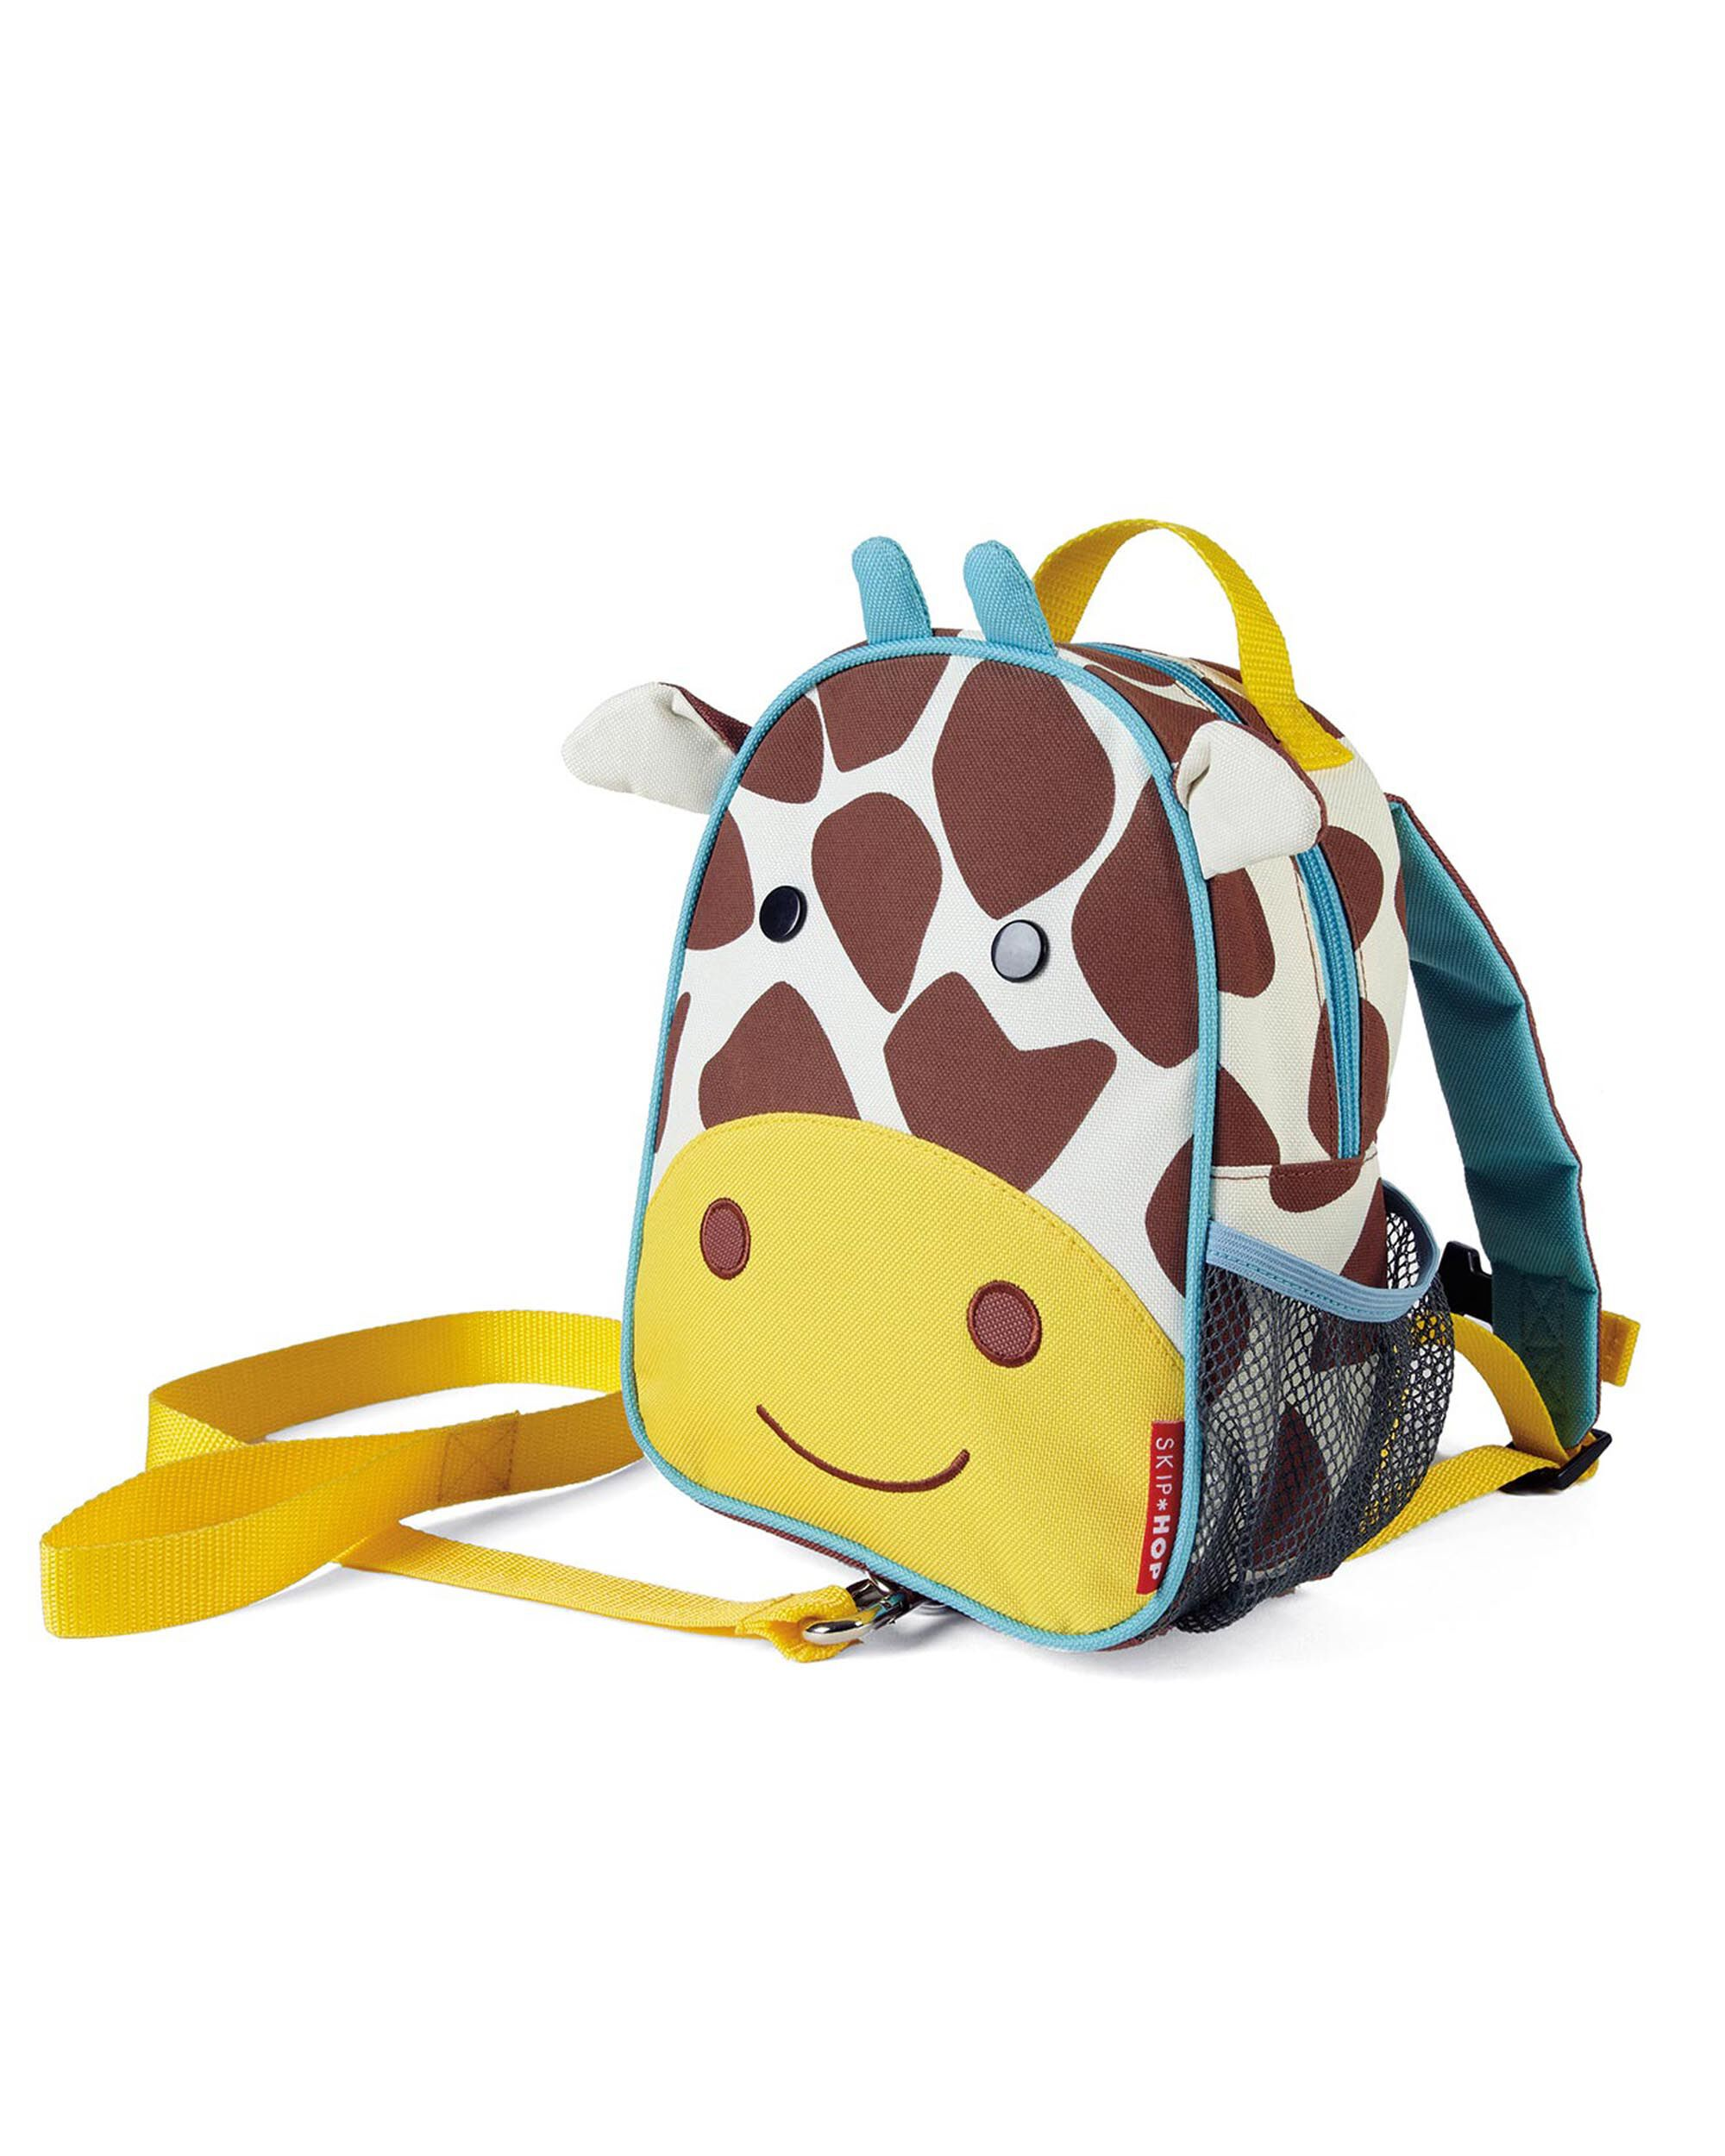 Quality Official Website Toddler Backpack With Reins Never Lets Your Kids Get Away In Child Safety Harness Excellent